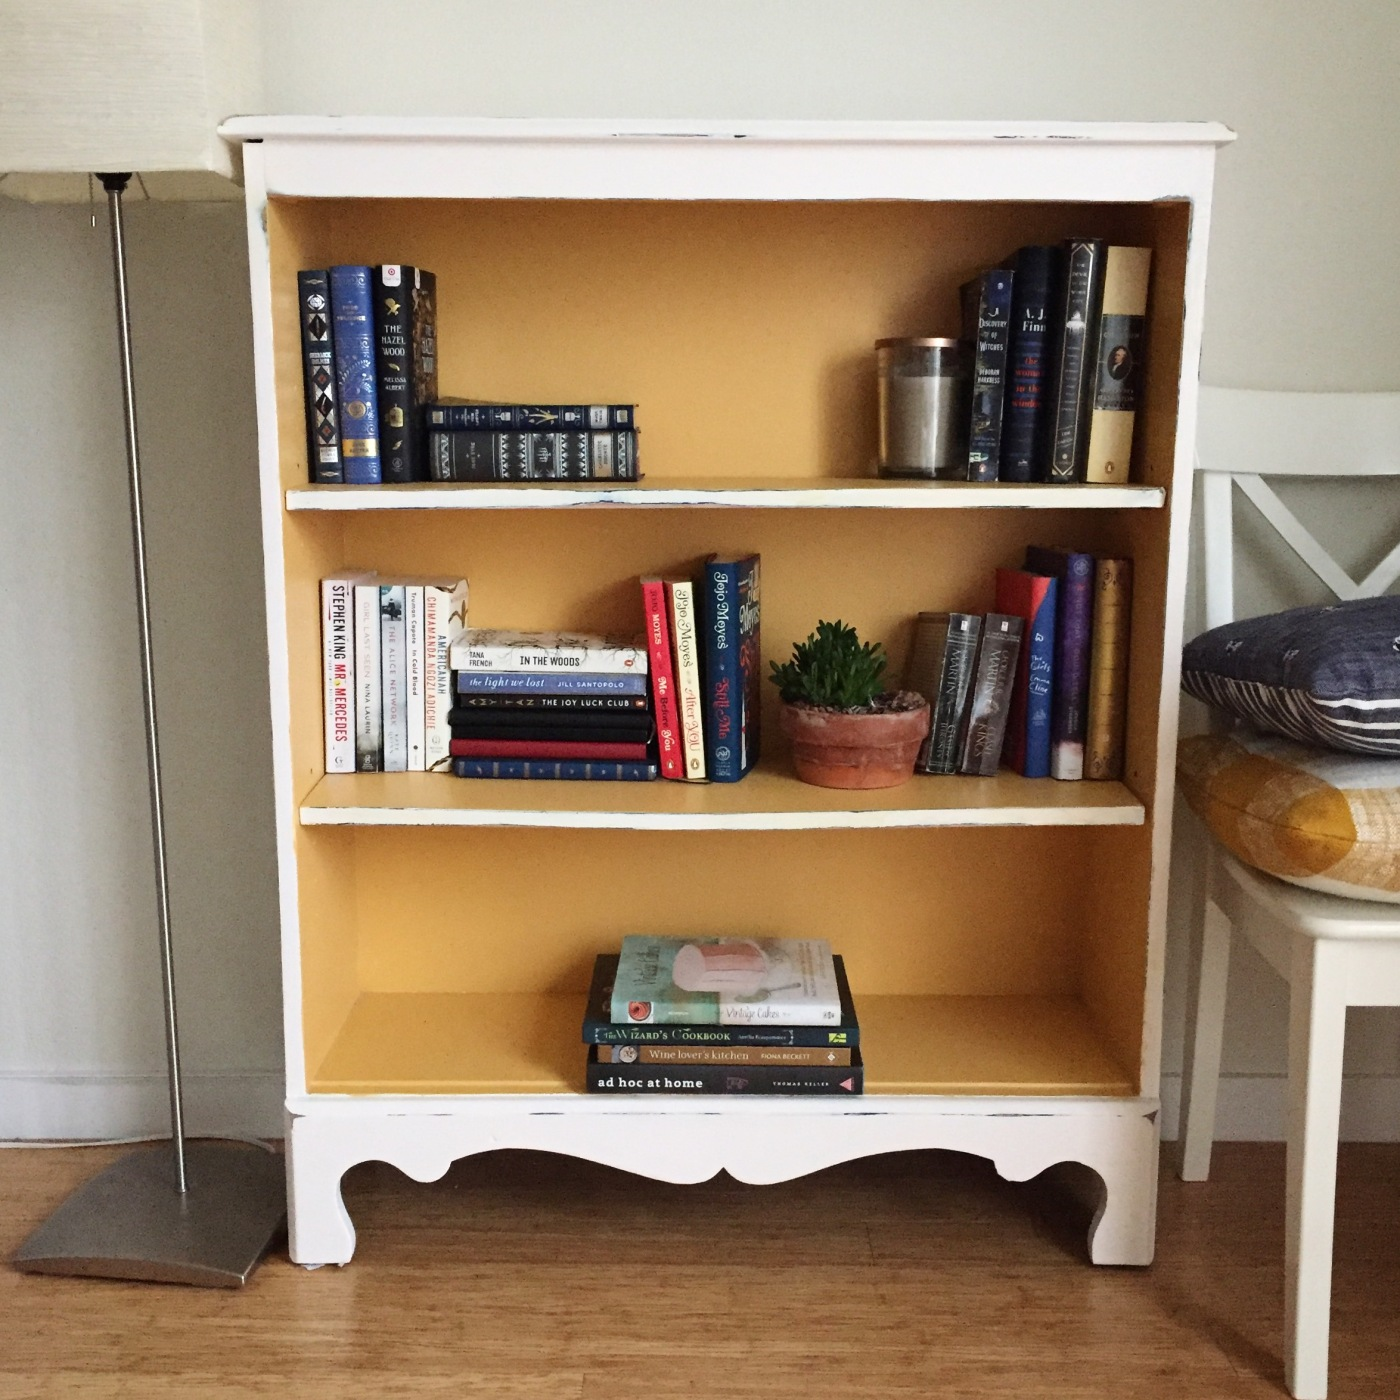 Im In Love With My New Gently Used Bookshelf That I Found On Facebook Marketplace Originally Navy Blue Pictured Below Sanded